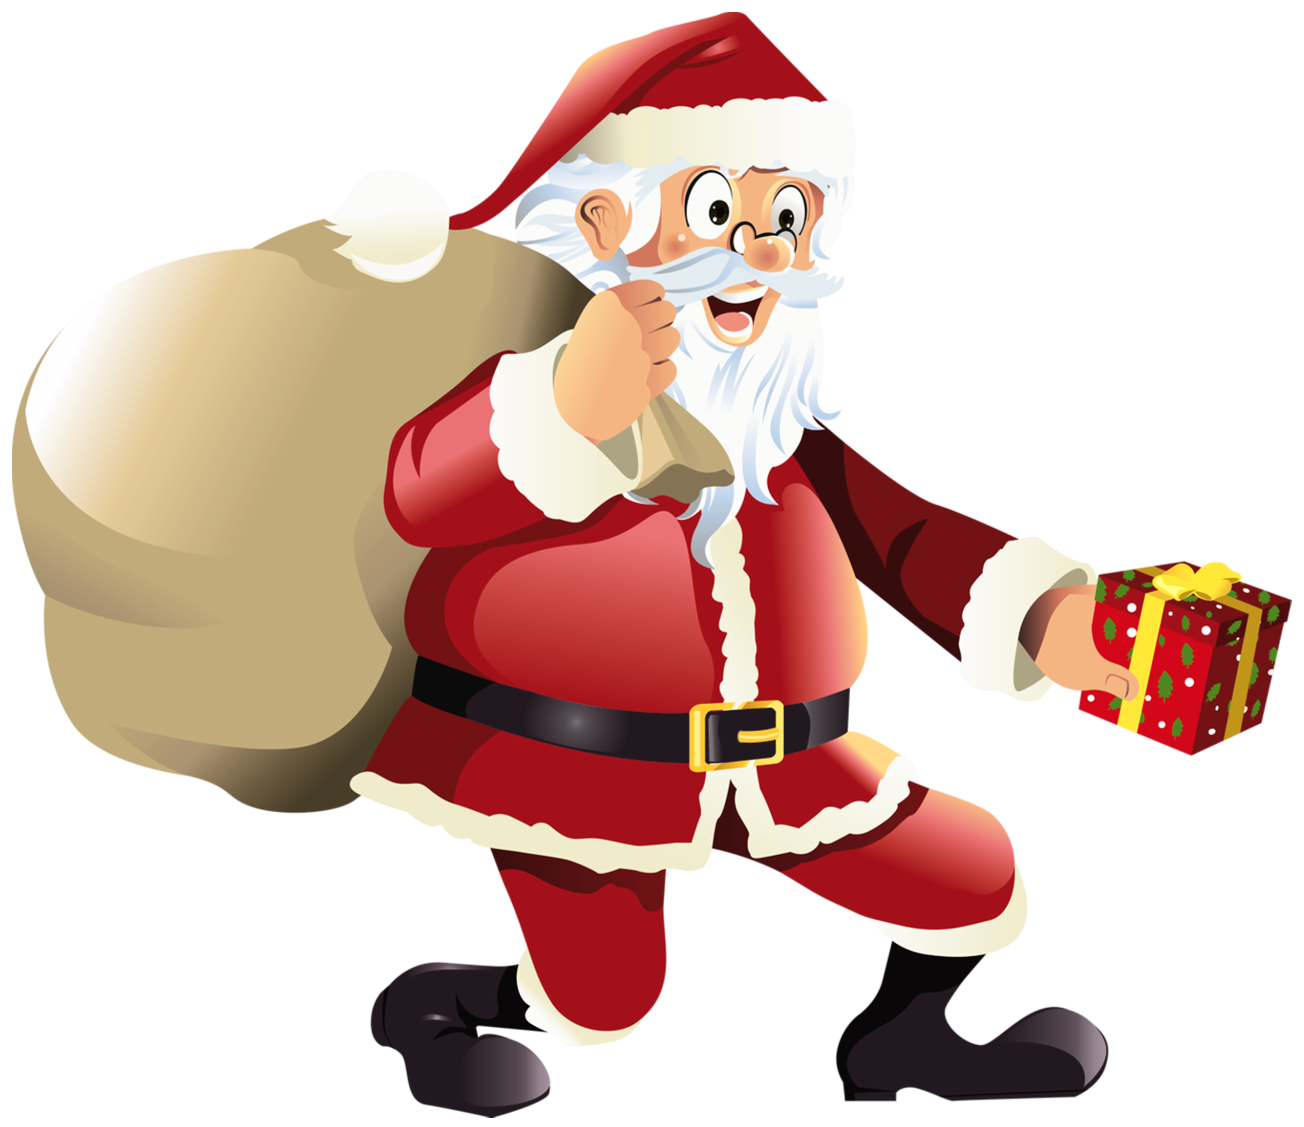 Santa clipart transparent background #1